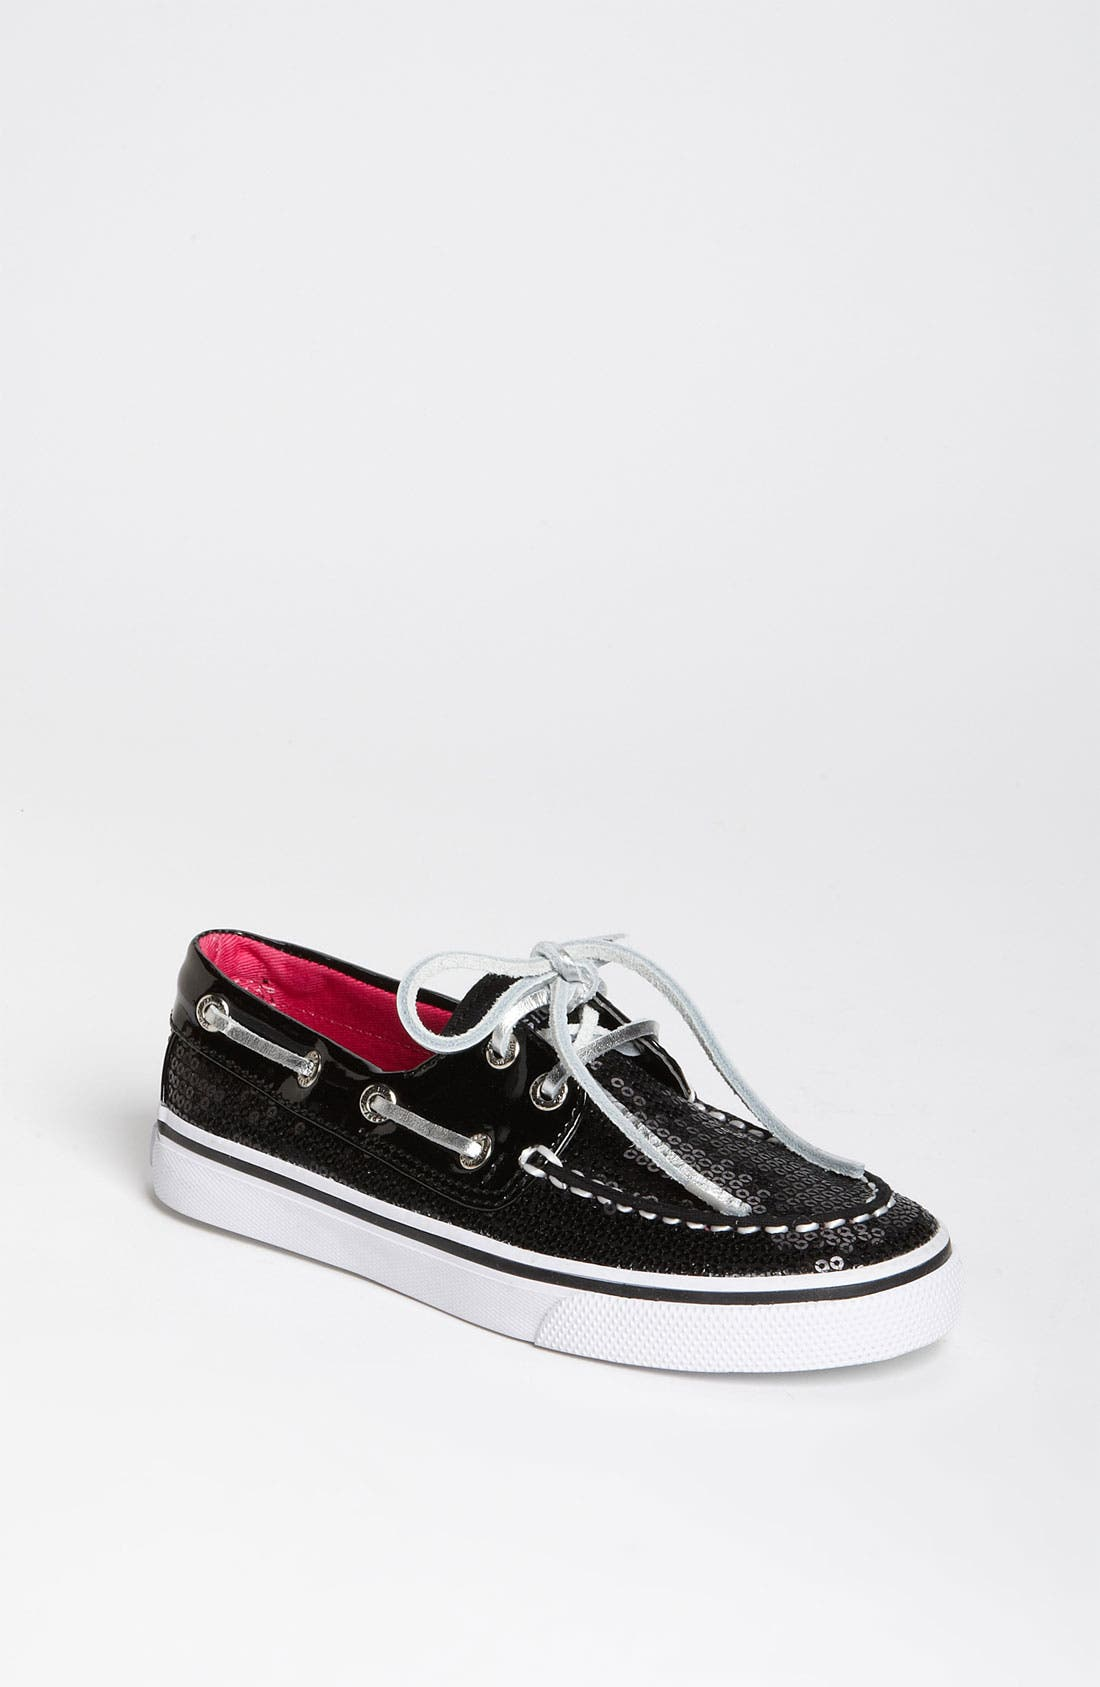 Alternate Image 1 Selected - Sperry Top-Sider® Kids 'Bahama' Boat Shoe (Walker, Toddler, Little Kid, Big Kid)